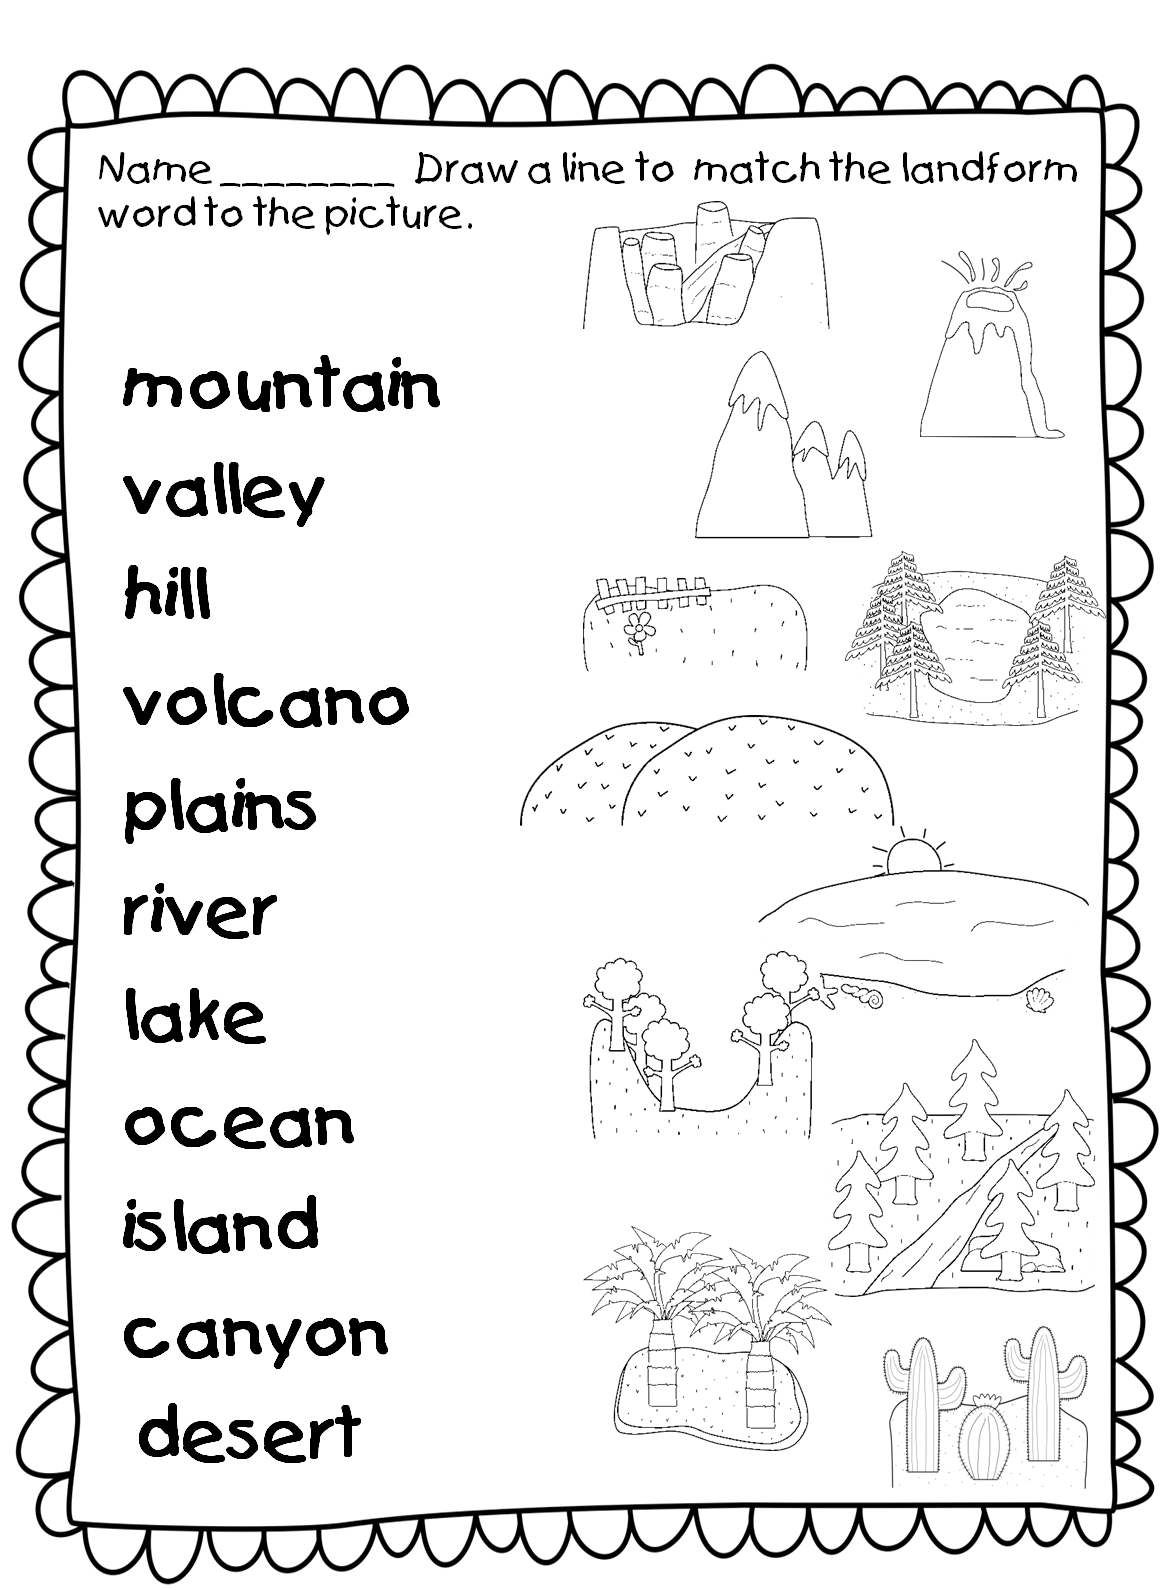 Free printables homeschool giveaways. Landforms drawing river picture royalty free library